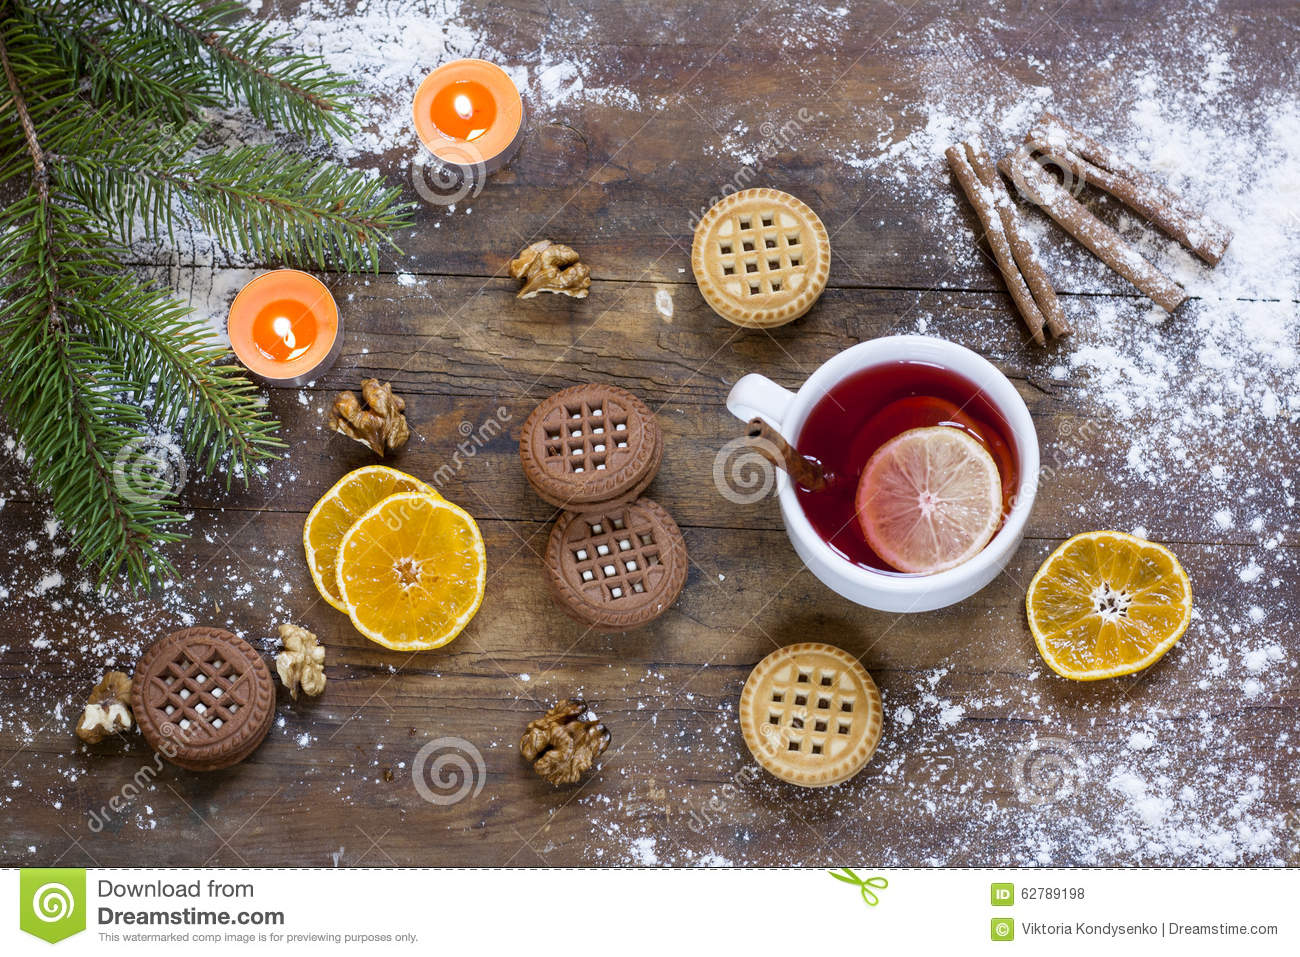 Tea tangerines and cookies in christmas decor with